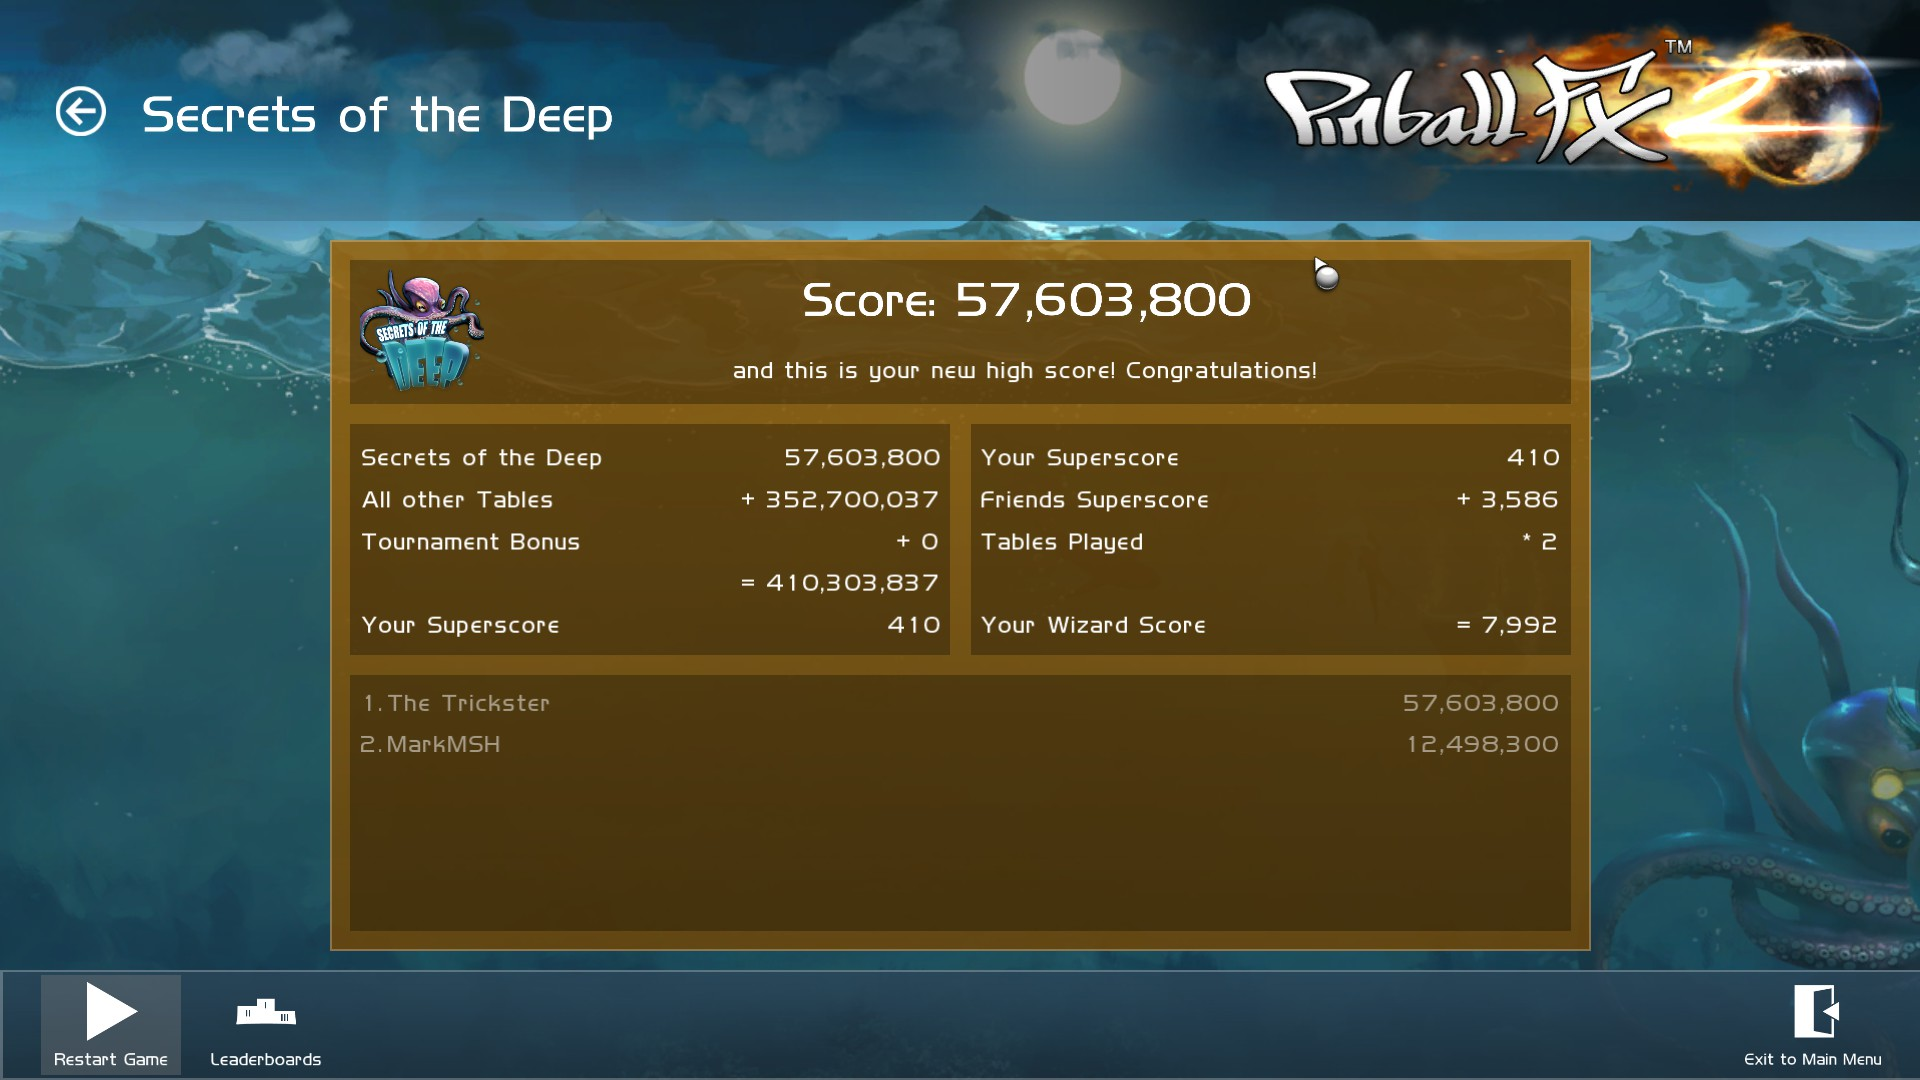 TheTrickster: Pinball FX 2: Secrets of the Deep (PC) 57,603,800 points on 2015-12-06 00:59:15